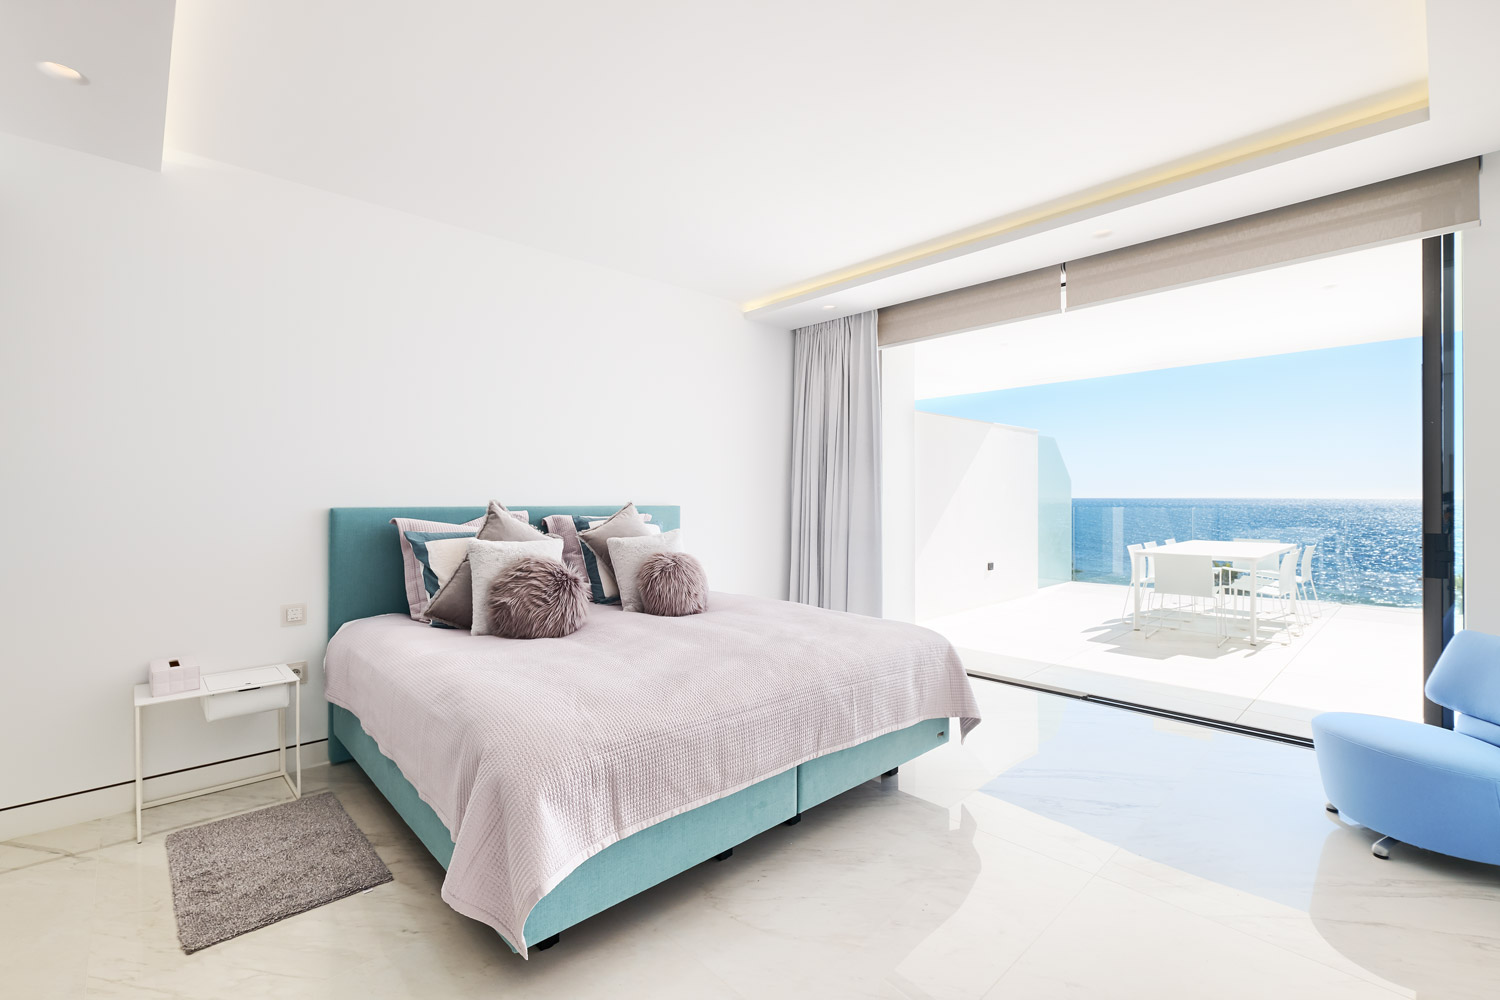 Frontline-beach-apartment-bedroom